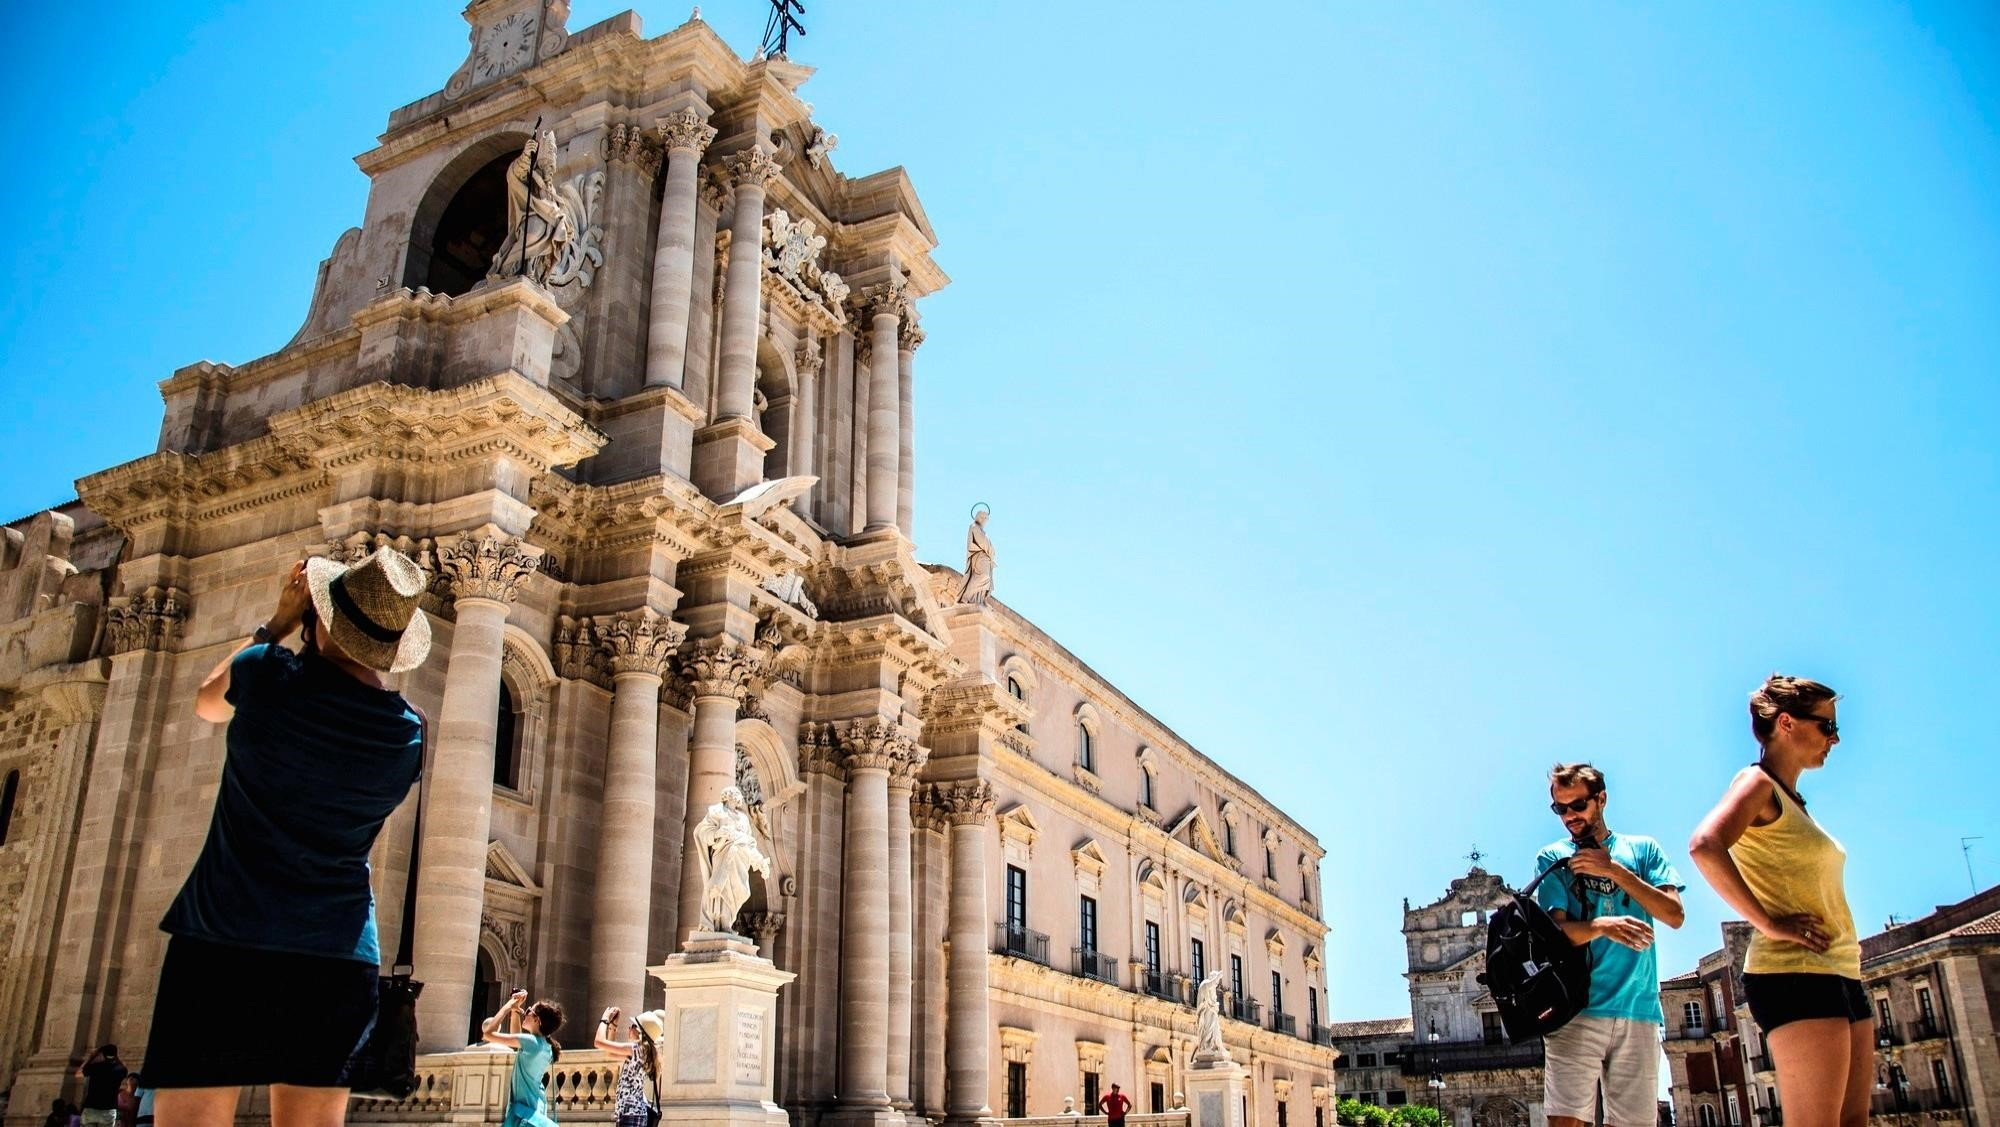 Cathedral of Siracusa in Sicily during a sunny day with tourists taking pictures